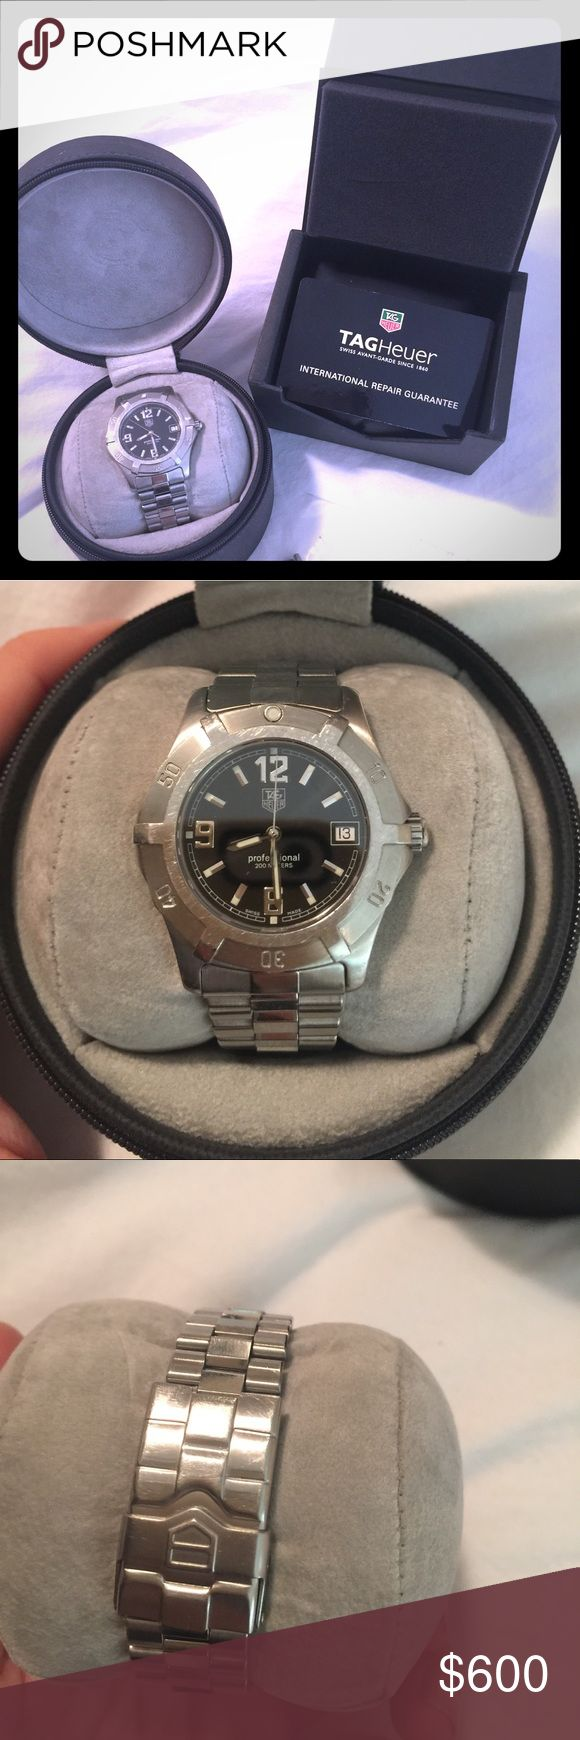 Tag Heuer Professional 200 meter watch Authentic Women's TAG silver watch. Swiss bracelet. Recently serviced by TAG. Will ship in its case and with original box. Also has additional links. Perfect gift! Tag Heuer Accessories Watches